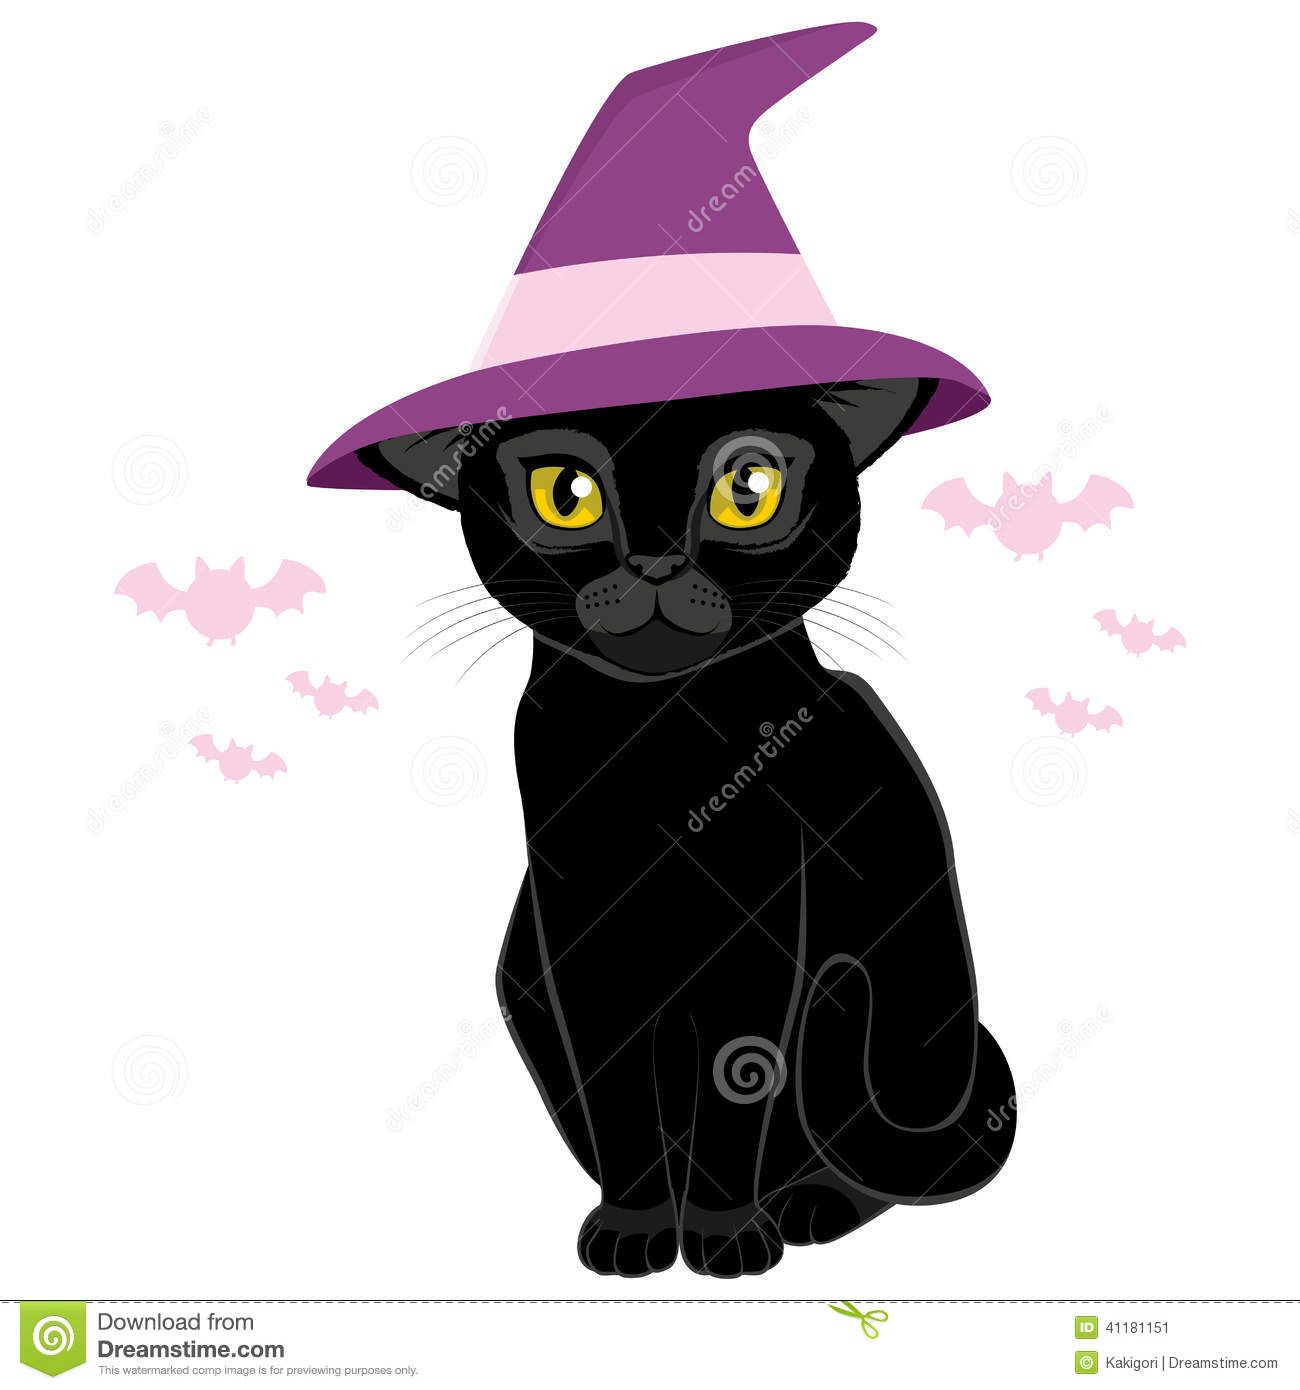 74f72c1a Halloween Witch Hat Black Cat Stock Vector - Illustration of wizard ...